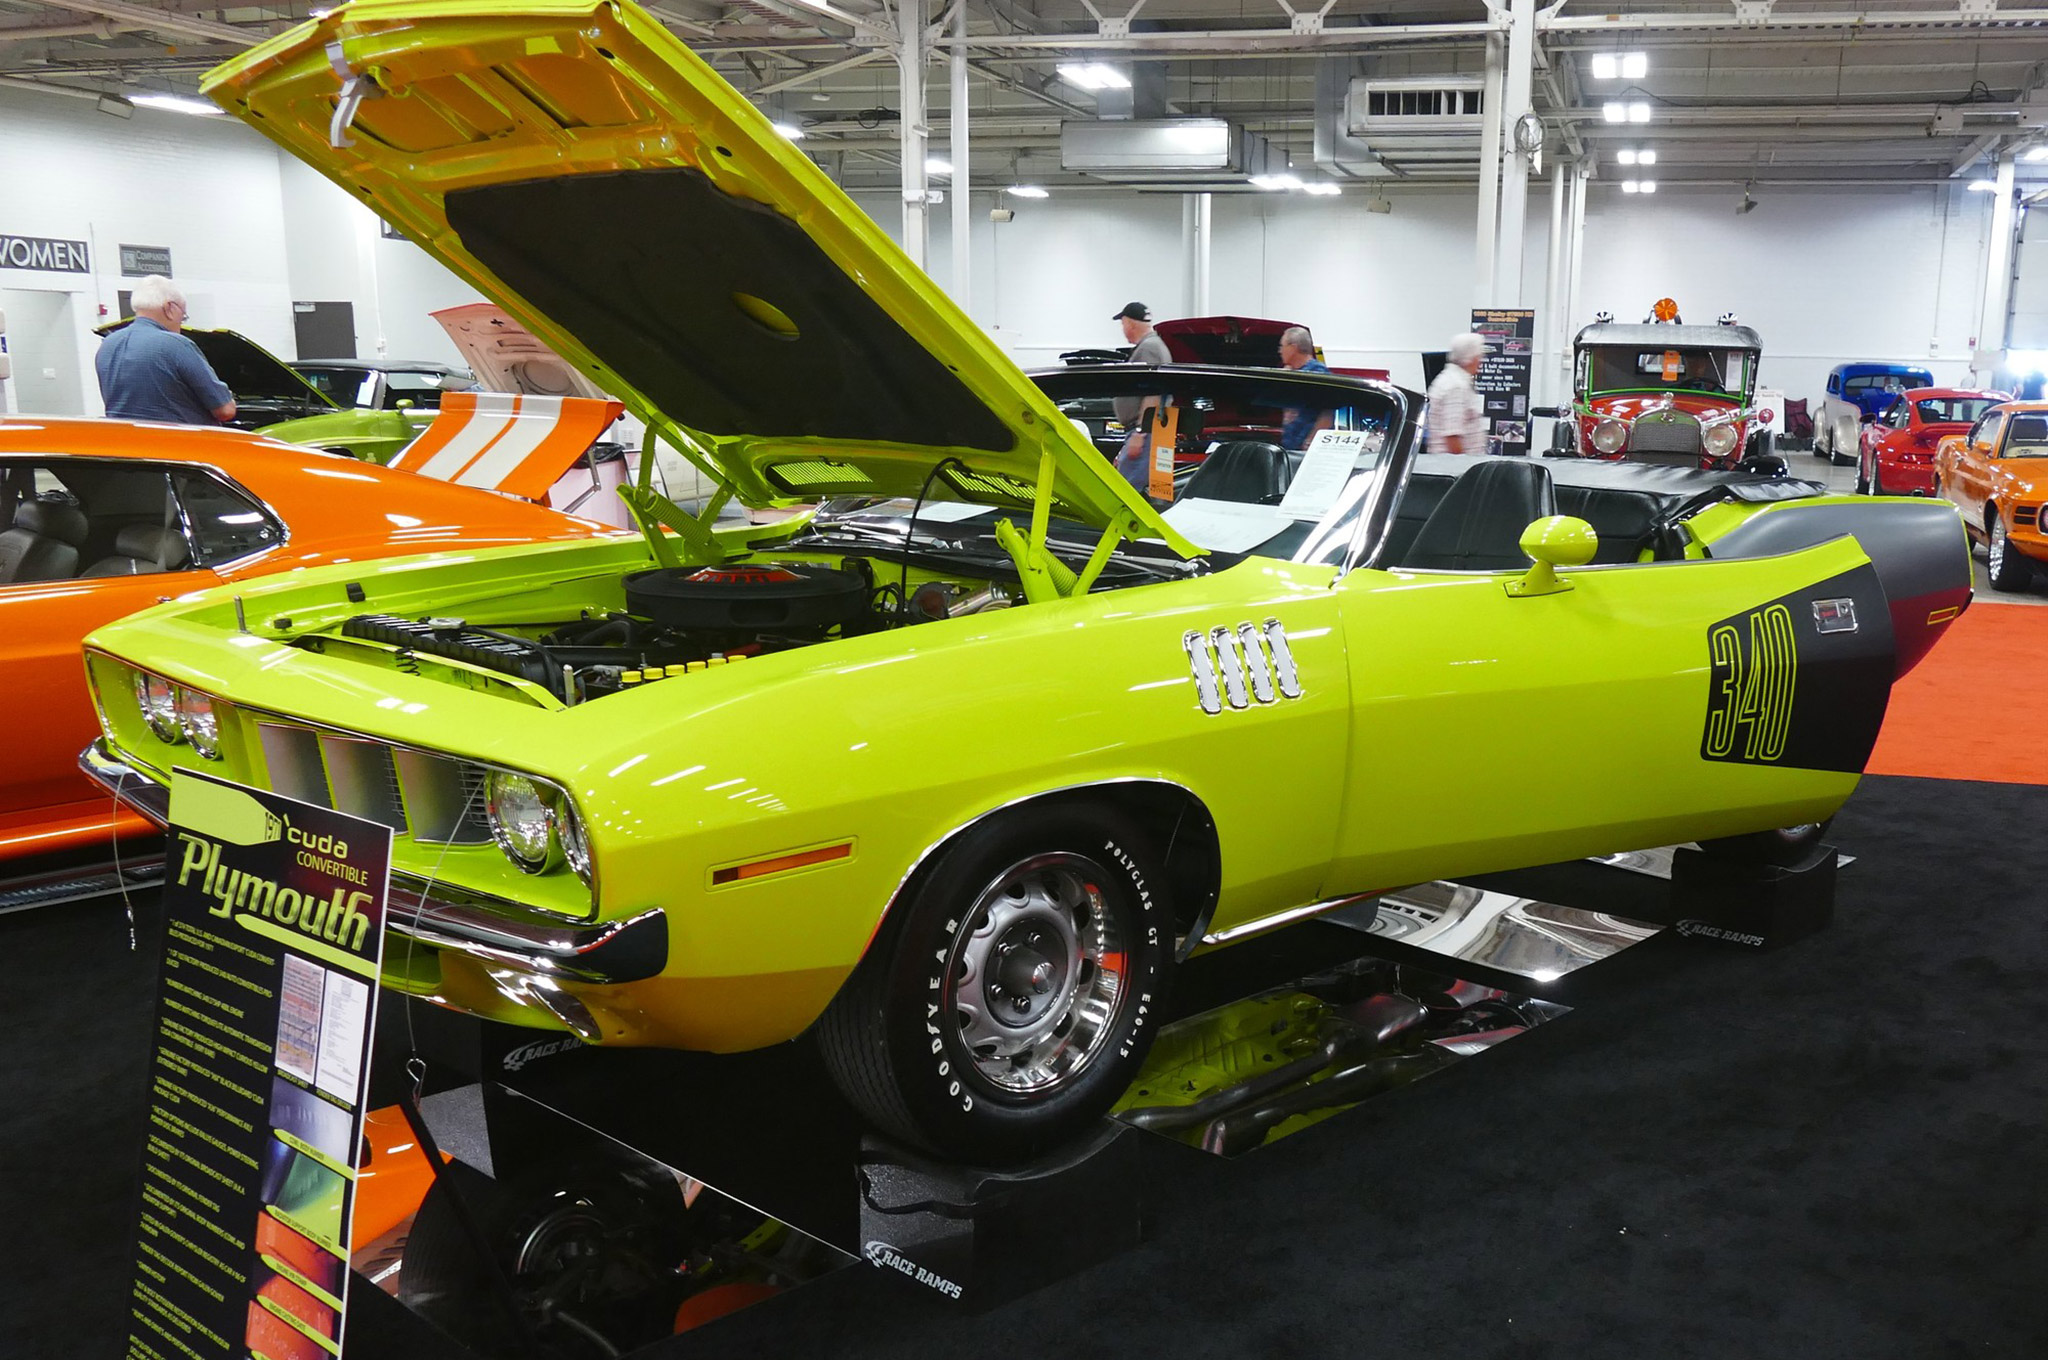 Here is a 1971 'Cuda 340 convertible (S144) that showed the performance E-Body droptops are strong regardless of engine. It took an aggressive $125,000 to put into a new garage. Sold!